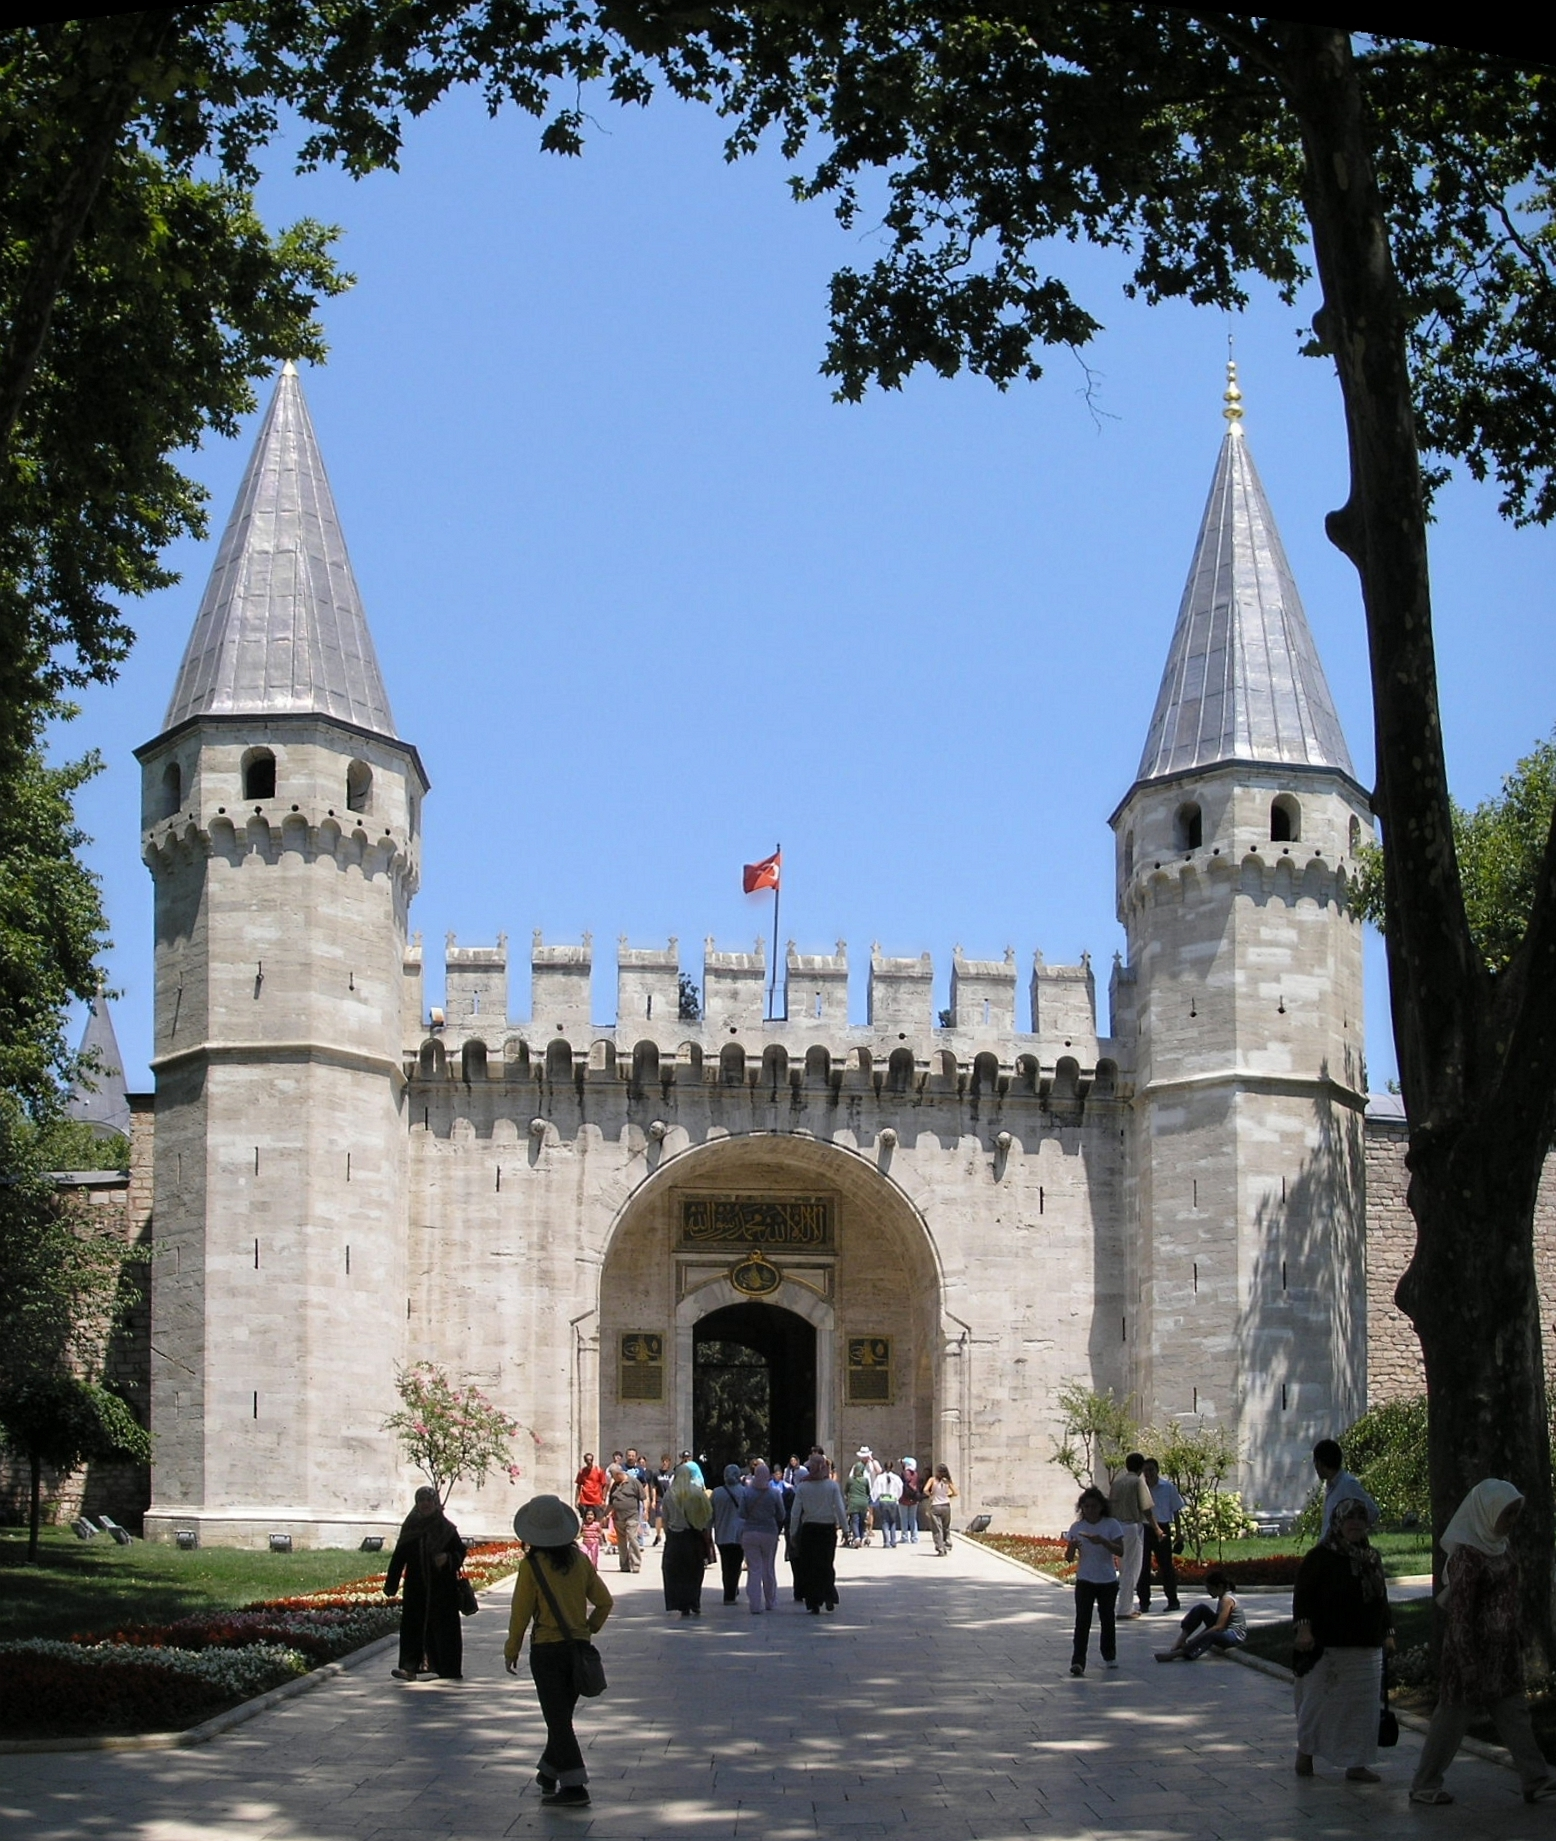 File:Gate of Salutation Topkapi Istanbul 2007 Pano.jpg - Wikipedia